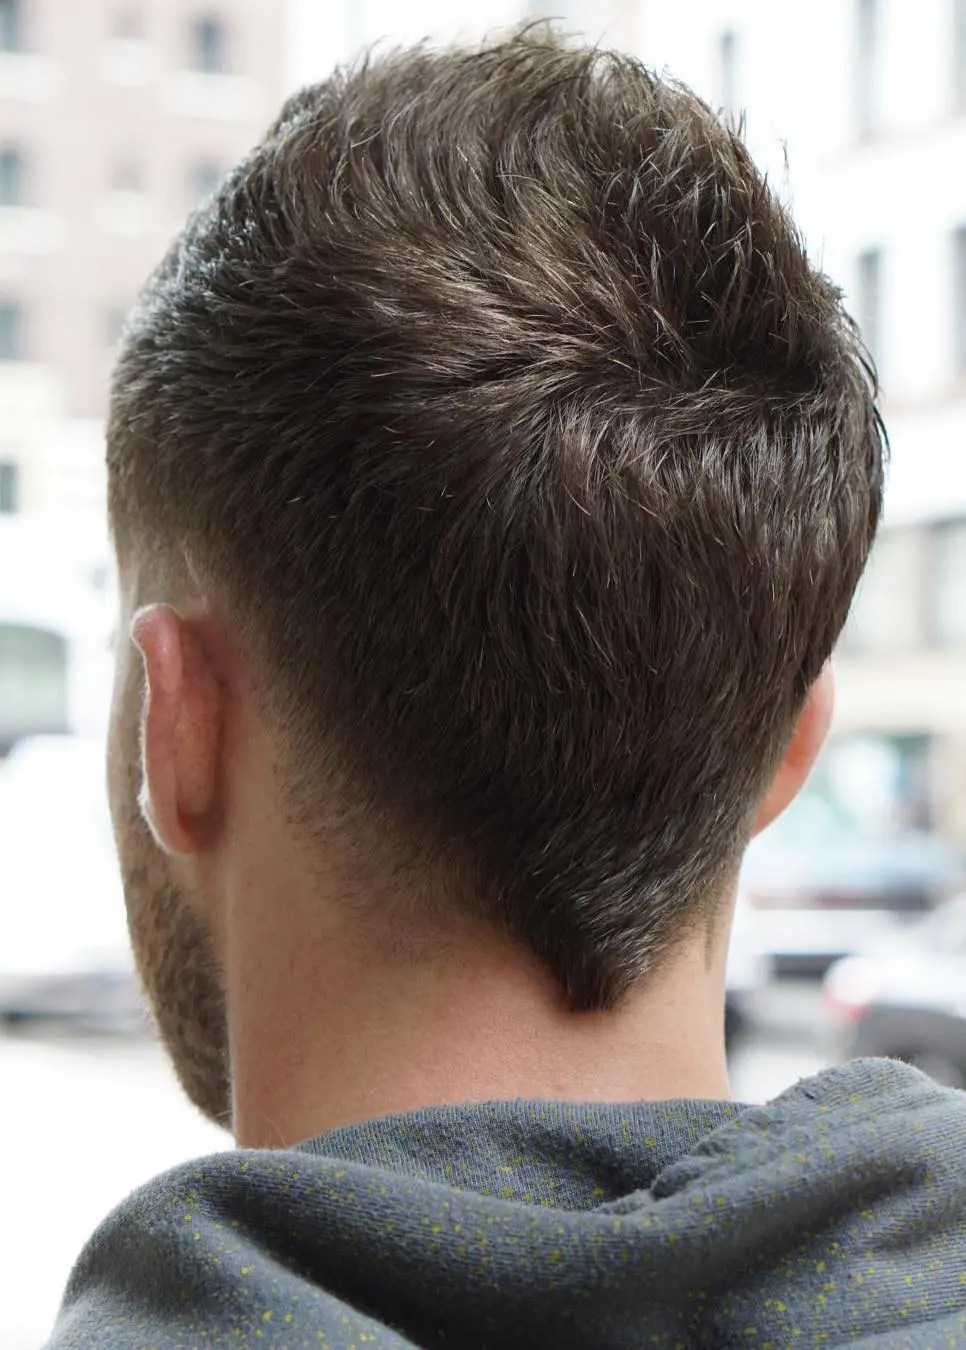 37 Best Haircuts for Men With Thick Hair (High Volume) in 2021